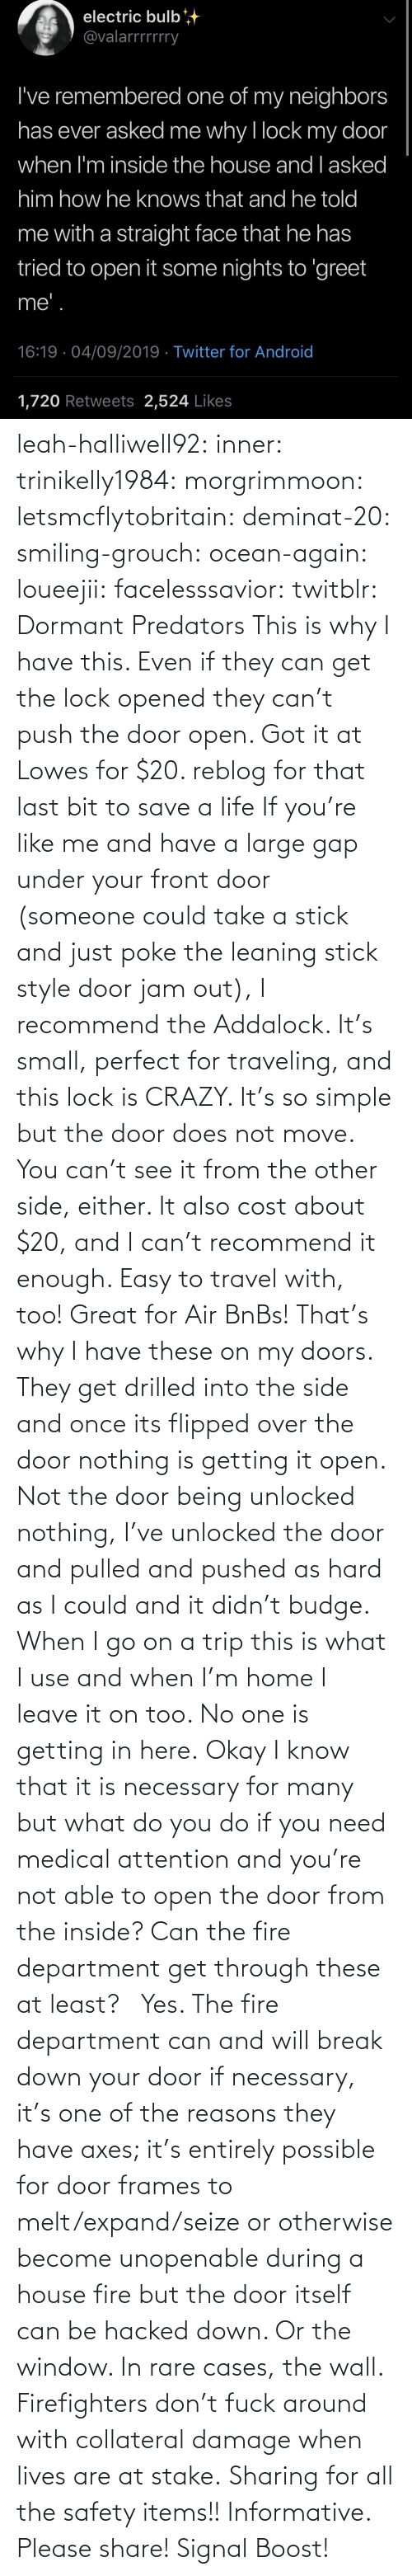 The Door: leah-halliwell92:  inner: trinikelly1984:  morgrimmoon:  letsmcflytobritain:  deminat-20:  smiling-grouch:   ocean-again:  loueejii:  facelesssavior:  twitblr:  Dormant Predators    This is why I have this. Even if they can get the lock opened they can't push the door open. Got it at Lowes for $20.   reblog for that last bit to save a life   If you're like me and have a large gap under your front door (someone could take a stick and just poke the leaning stick style door jam out), I recommend the Addalock. It's small, perfect for traveling, and this lock is CRAZY. It's so simple but the door does not move.  You can't see it from the other side, either. It also cost about $20, and I can't recommend it enough. Easy to travel with, too! Great for Air BnBs!     That's why I have these on my doors. They get drilled into the side and once its flipped over the door nothing is getting it open. Not the door being unlocked nothing, I've unlocked the door and pulled and pushed as hard as I could and it didn't budge. When I go on a trip this is what I use and when I'm home I leave it on too. No one is getting in here.  Okay I know that it is necessary for many but what do you do if you need medical attention and you're not able to open the door from the inside? Can the fire department get through these at least?  Yes. The fire department can and will break down your door if necessary, it's one of the reasons they have axes; it's entirely possible for door frames to melt/expand/seize or otherwise become unopenable during a house fire but the door itself can be hacked down. Or the window. In rare cases, the wall. Firefighters don't fuck around with collateral damage when lives are at stake.    Sharing for all the safety items!!     Informative. Please share!  Signal Boost!